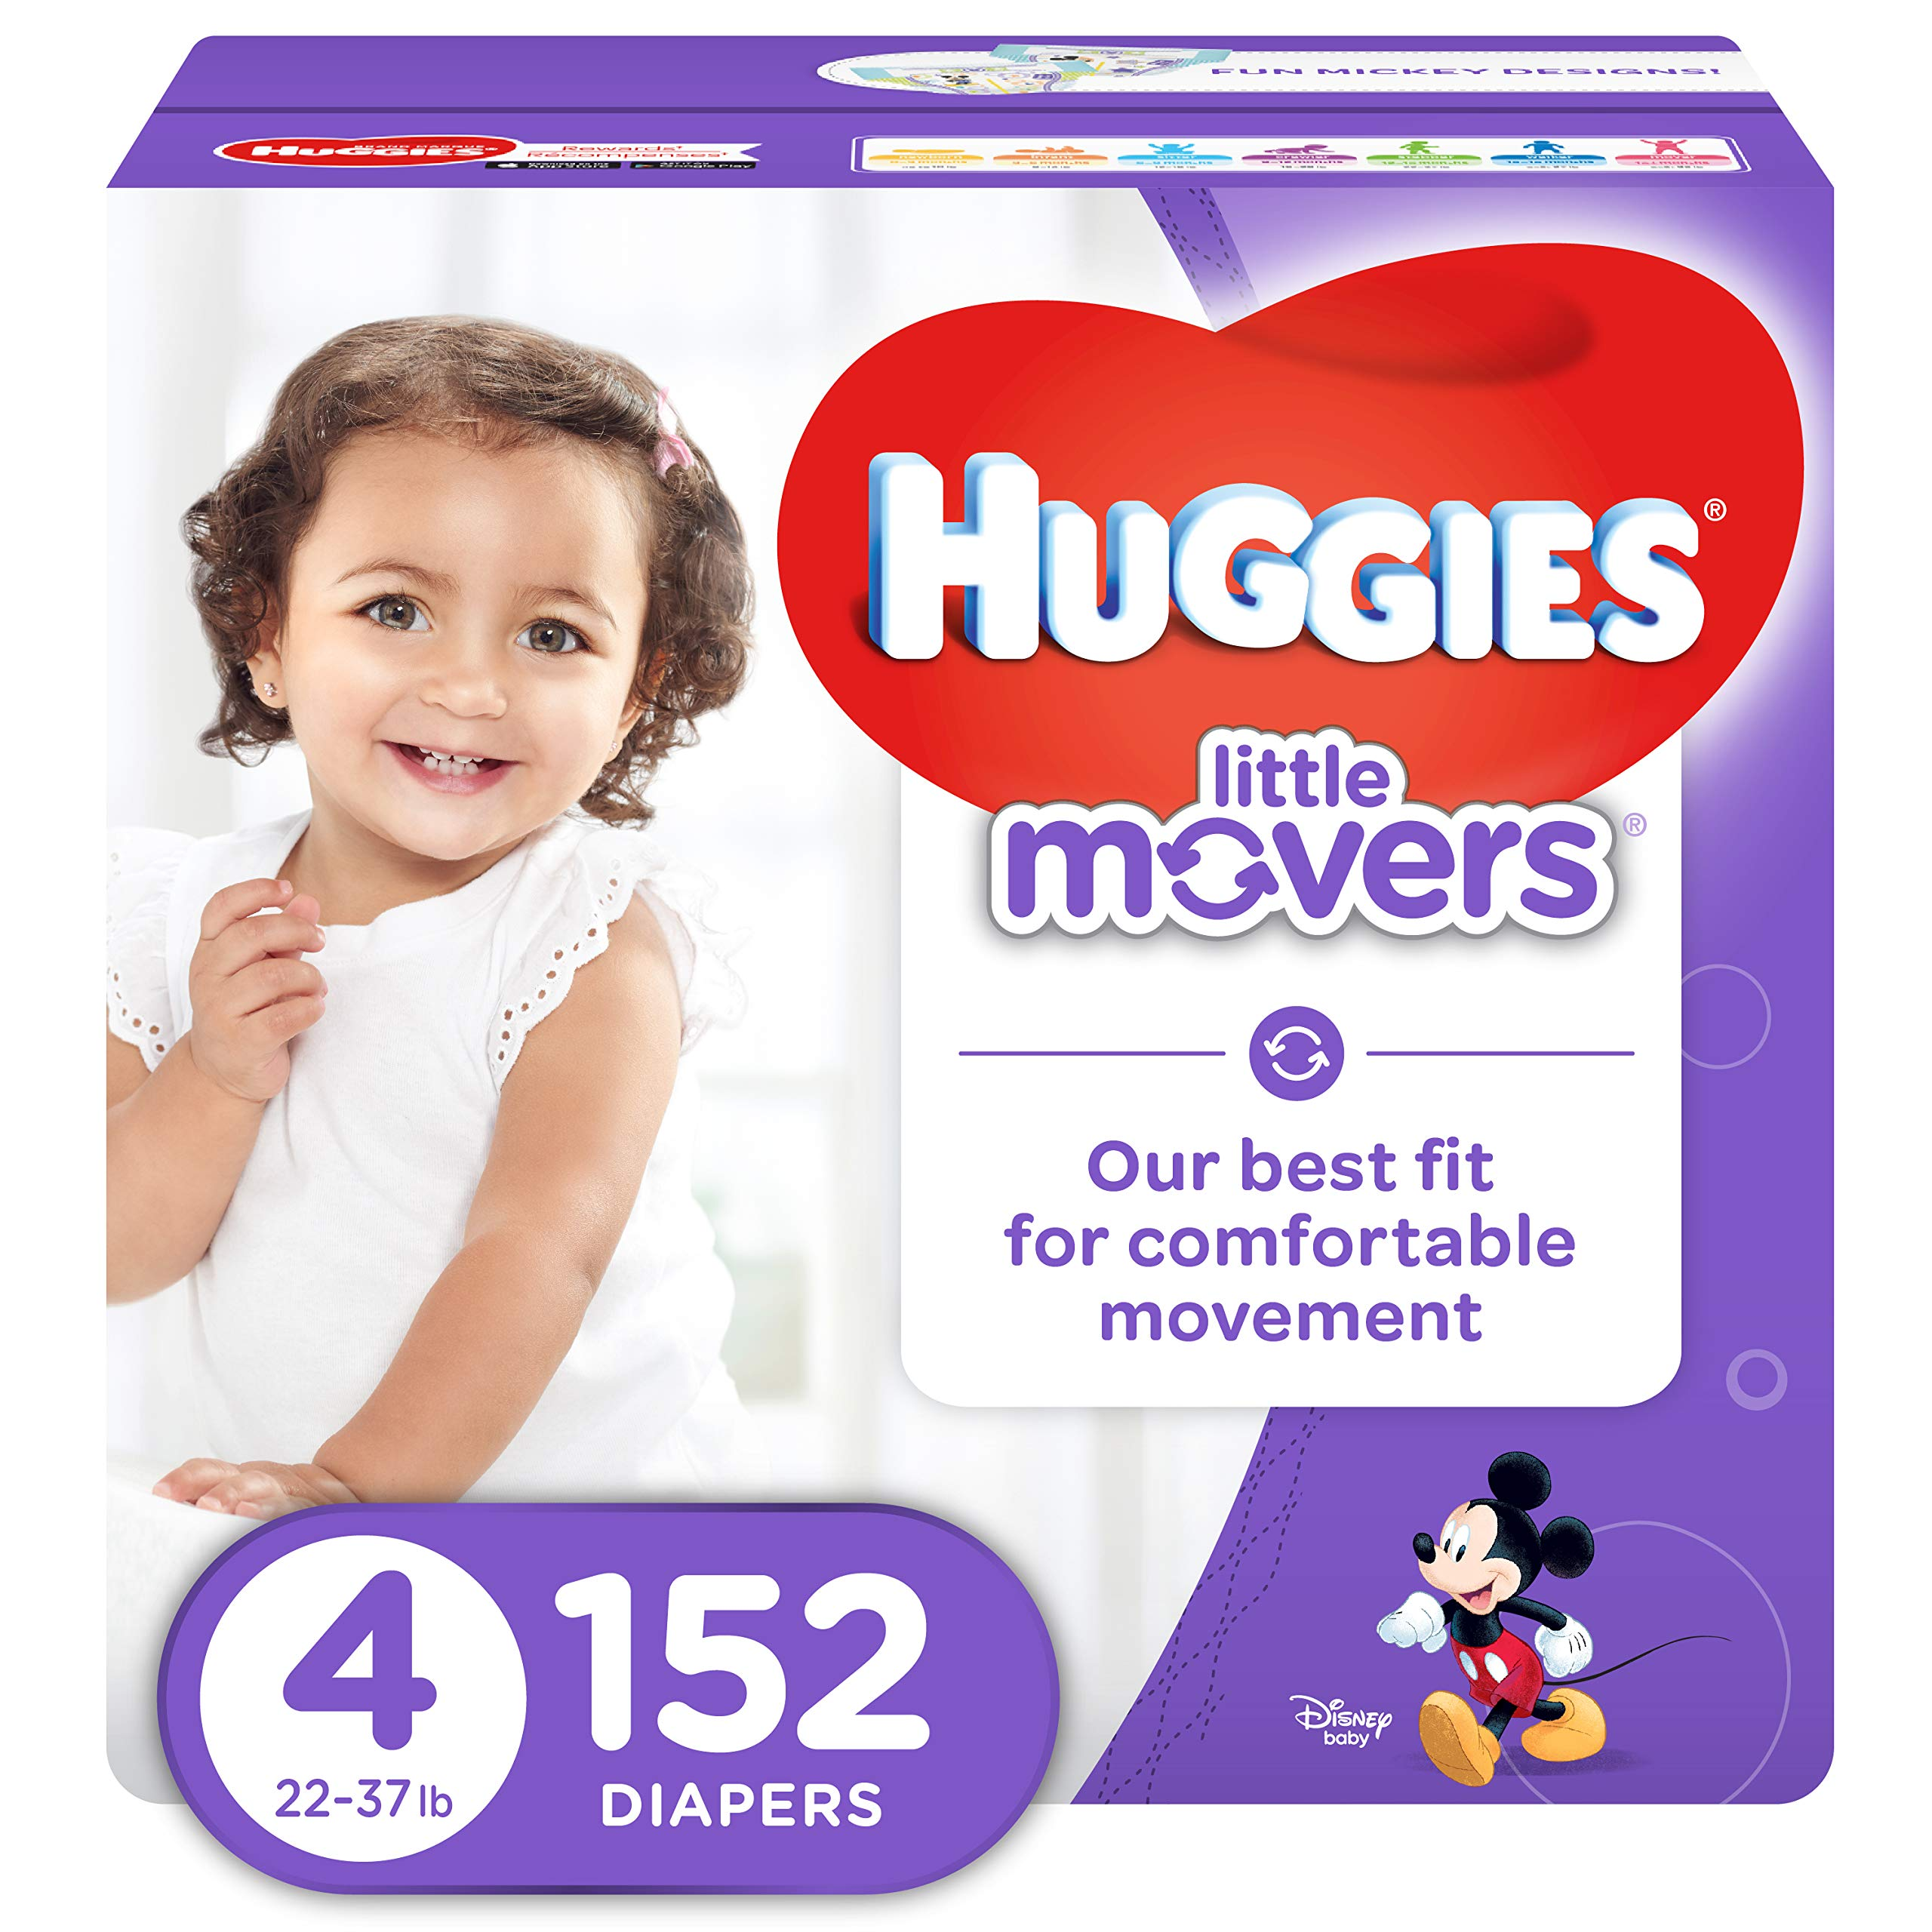 HUGGIES LITTLE MOVERS Active Baby Diapers, Size 4 (fits 22-37 lb.), 152 Ct, ECONOMY PLUS (Packaging May Vary) by HUGGIES